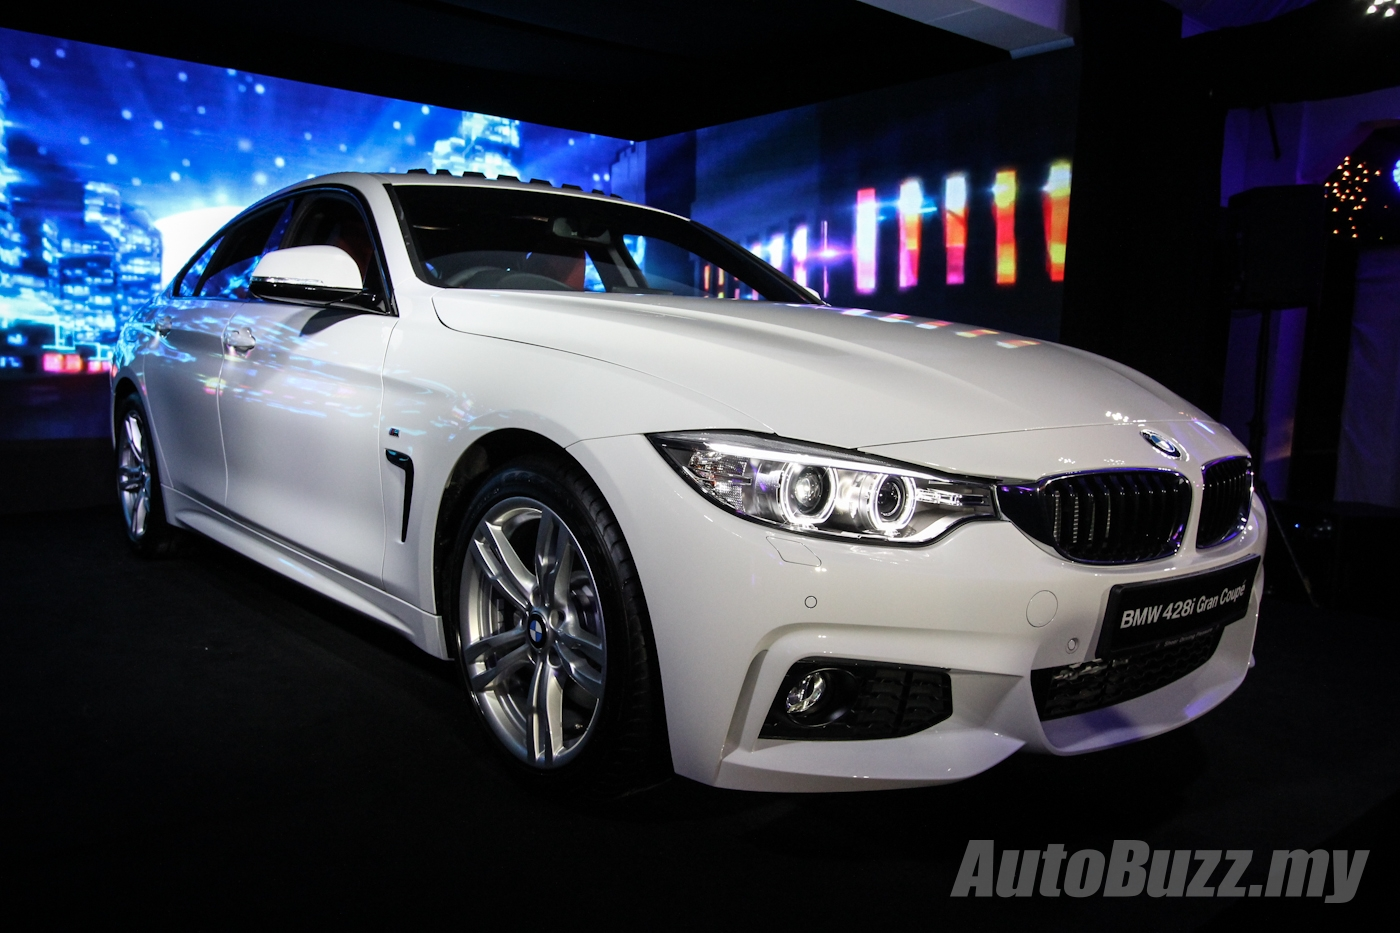 bmw 4 series gran coupe f36 launched in malaysia price from rm390k. Black Bedroom Furniture Sets. Home Design Ideas